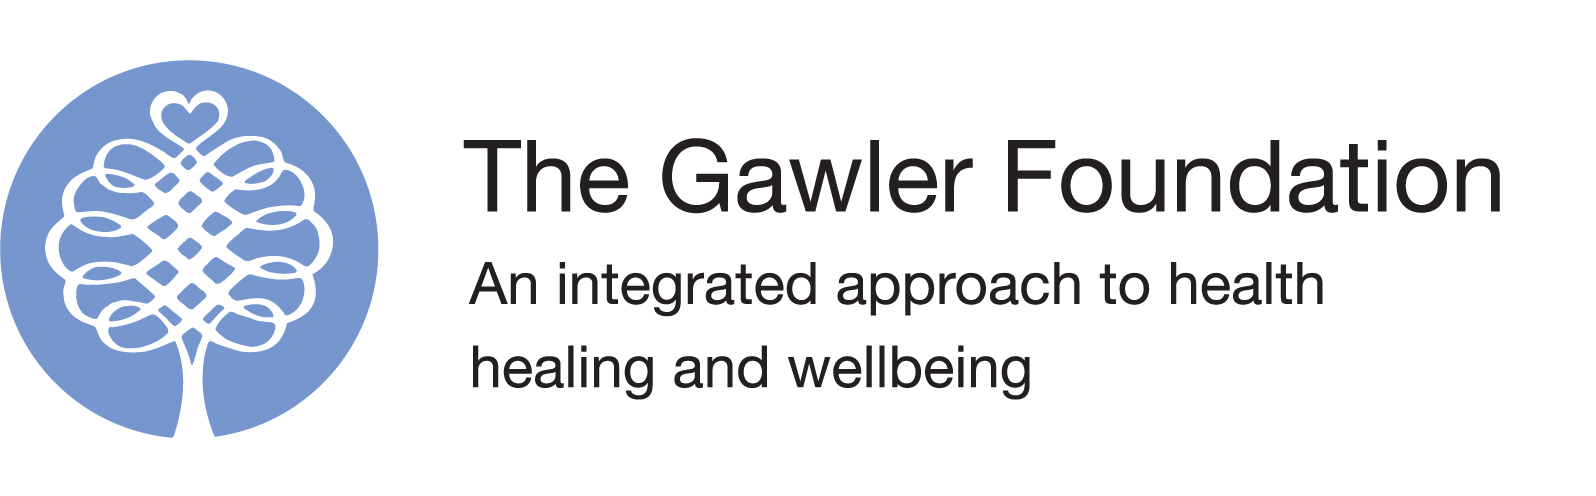 The Gawler Foundation